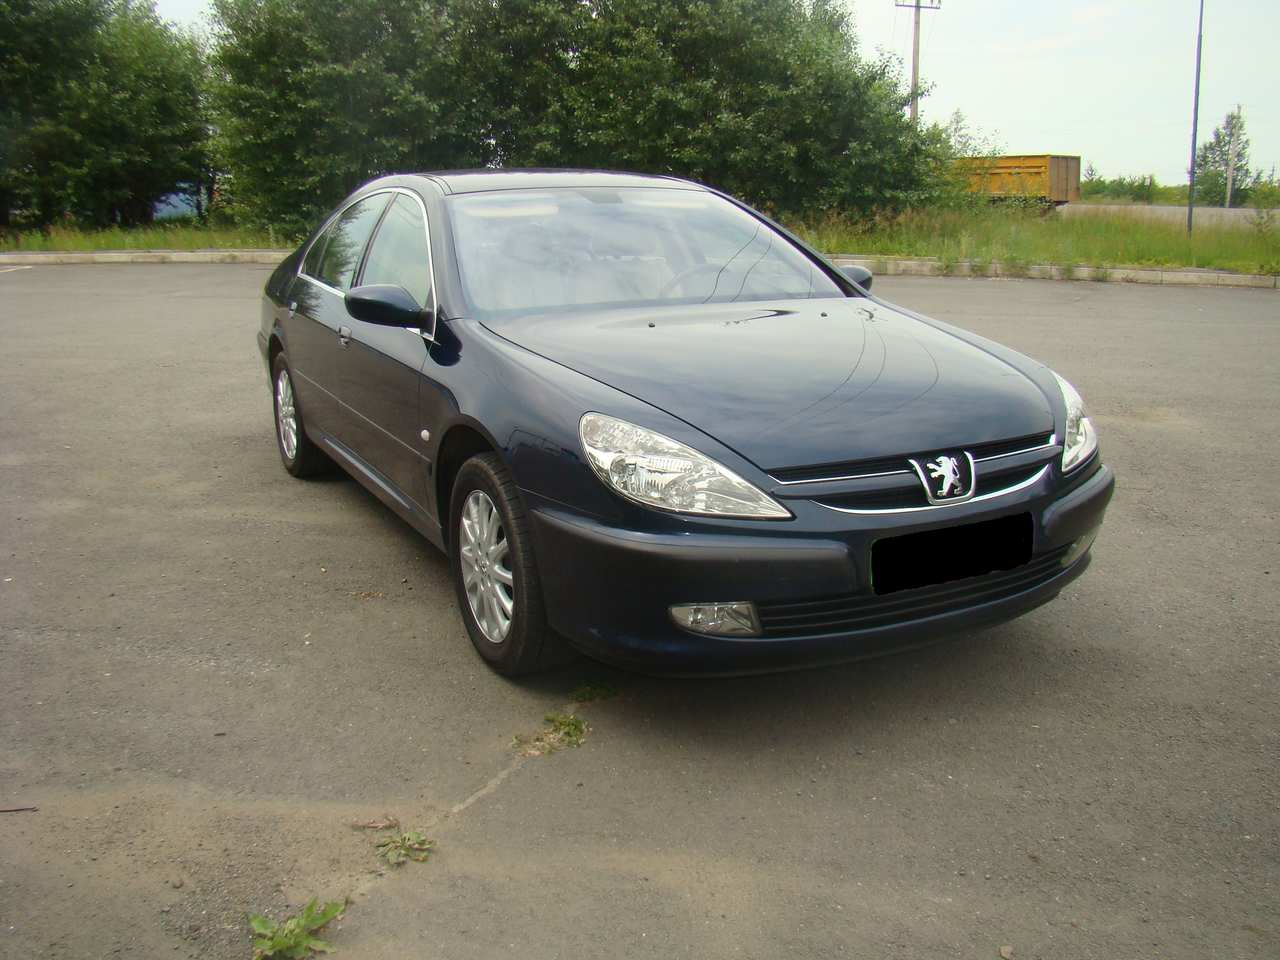 used 2001 peugeot 607 photos 2200cc gasoline ff manual for sale. Black Bedroom Furniture Sets. Home Design Ideas